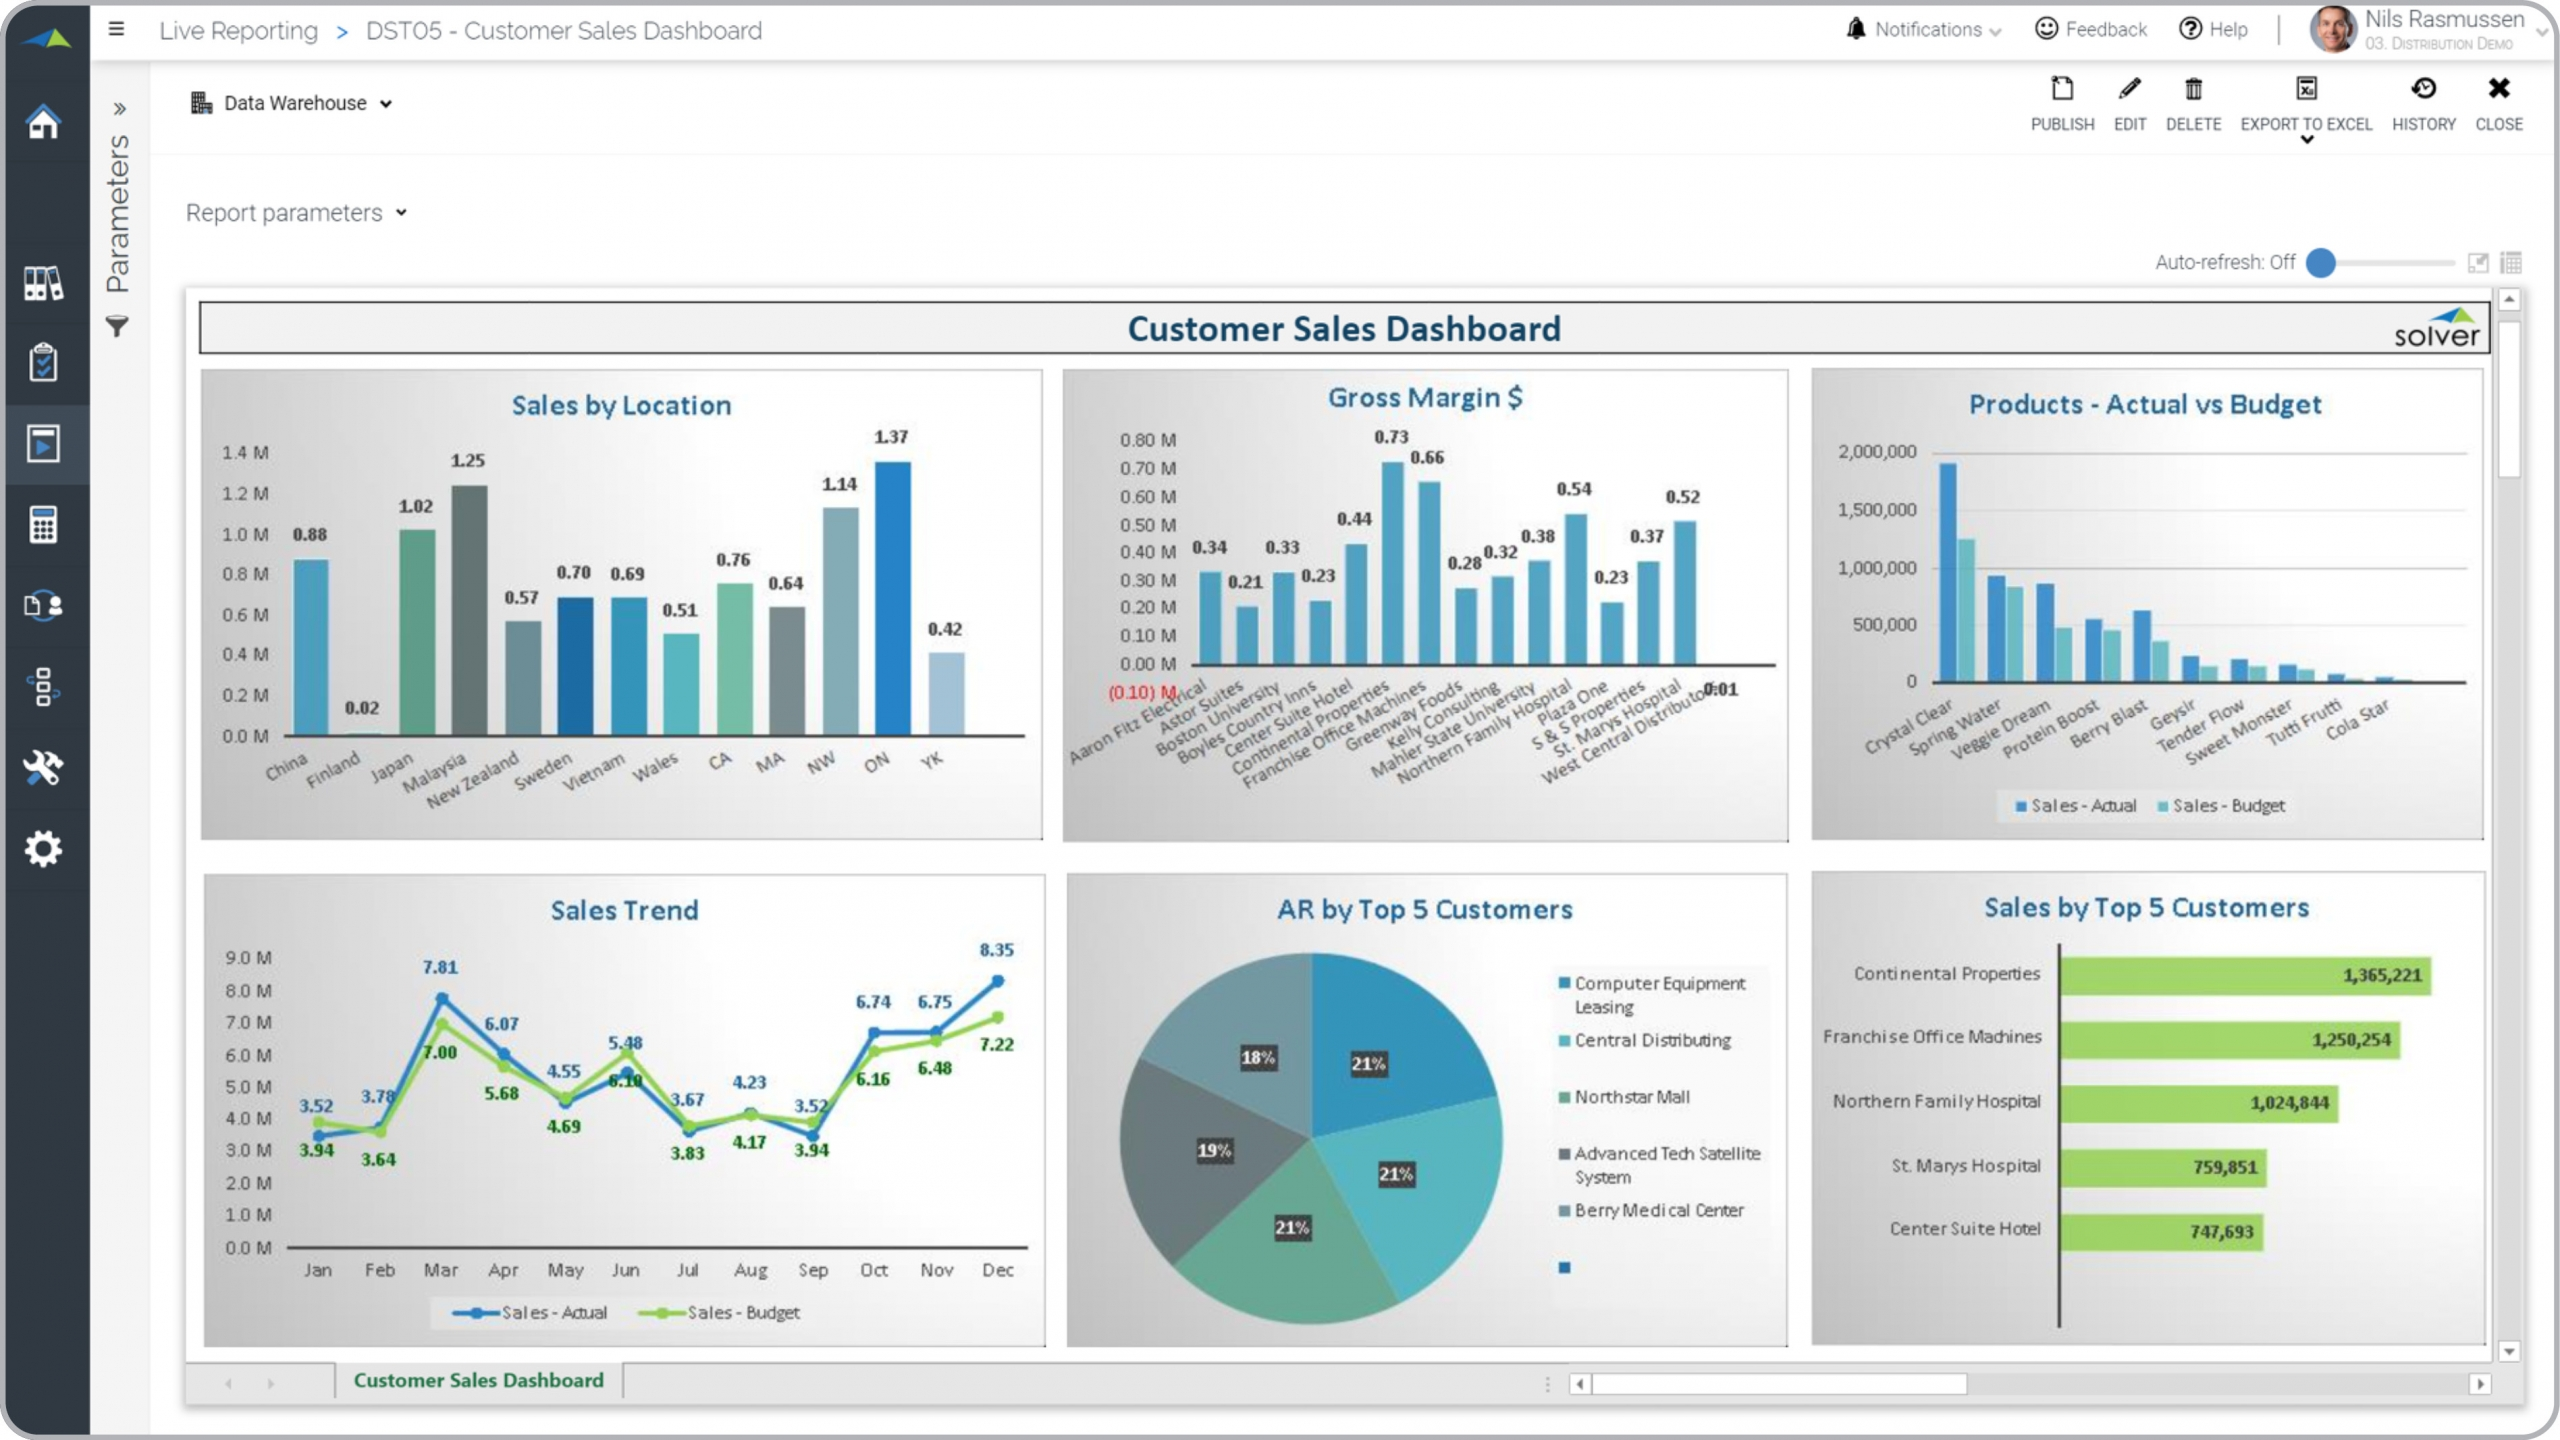 Example of a Customer Sales Dashboard for a Distribution Company